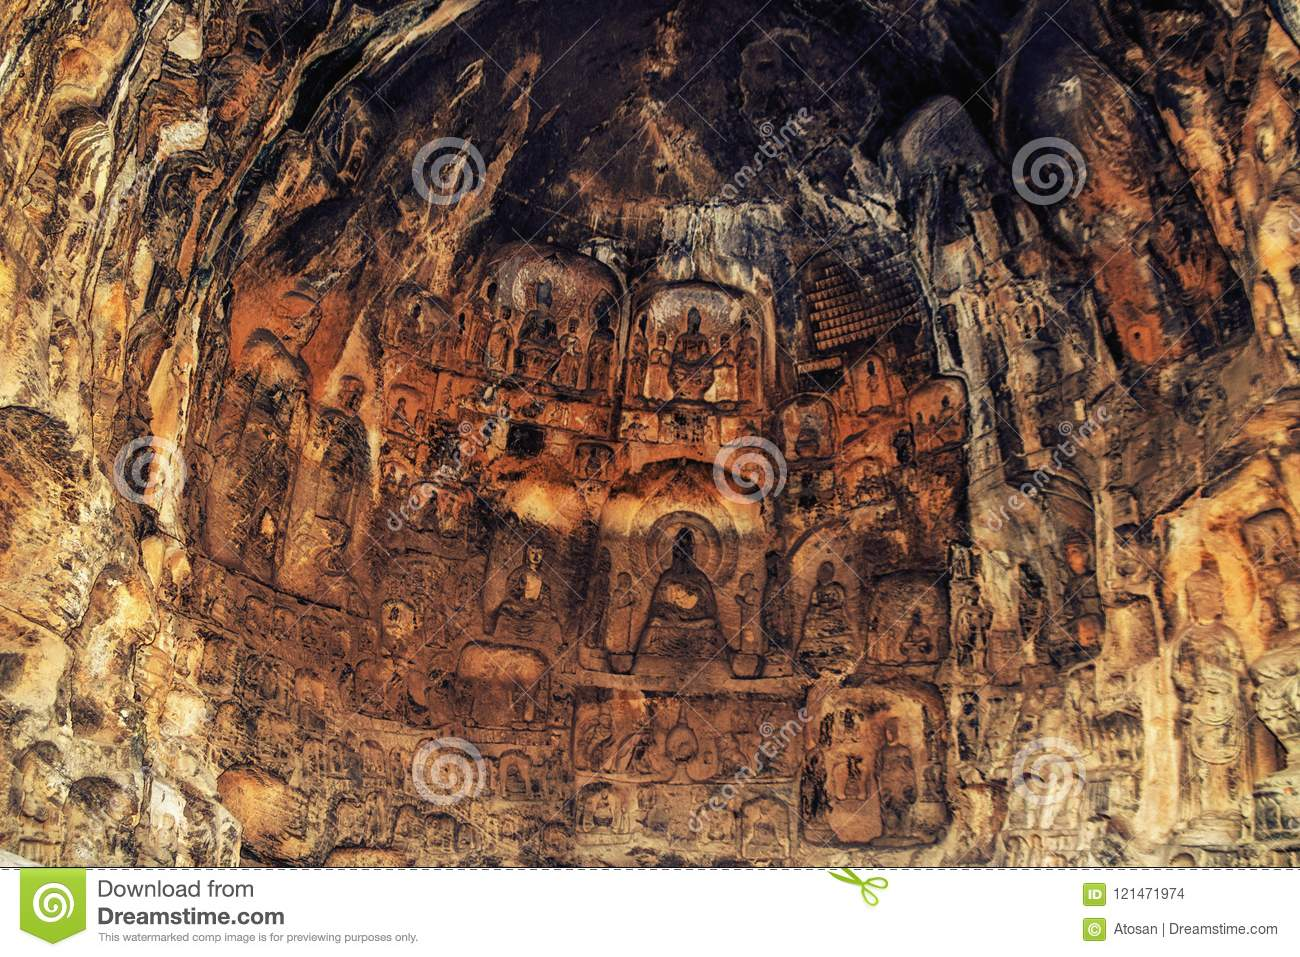 Lianhua lotus flower cave longmen grottoes and caves luoyang lianhua lotus flower cave longmen grottoes and caves luoyang izmirmasajfo